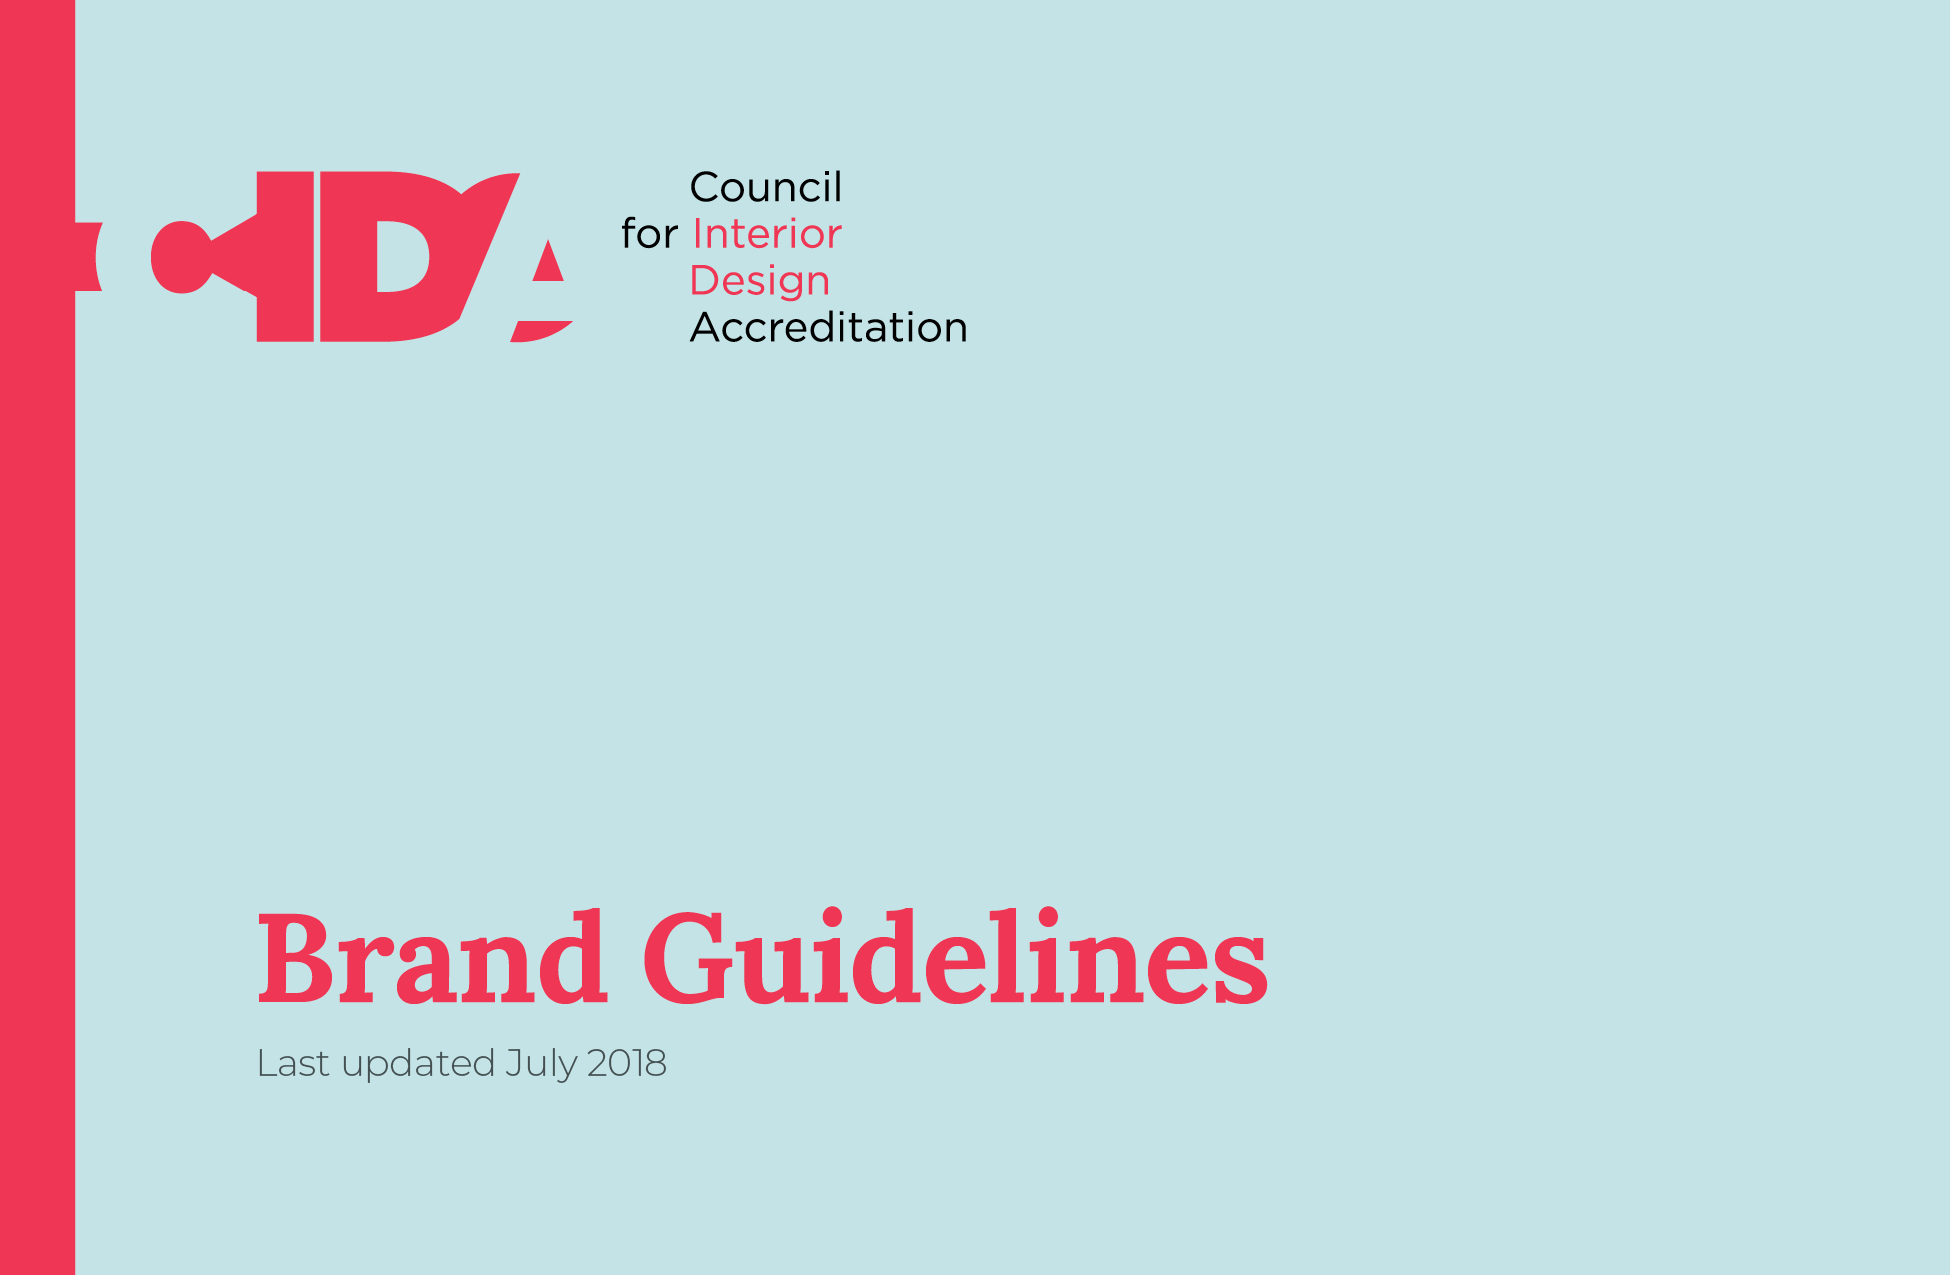 CIDA Guidelines_19Sept2018.jpg